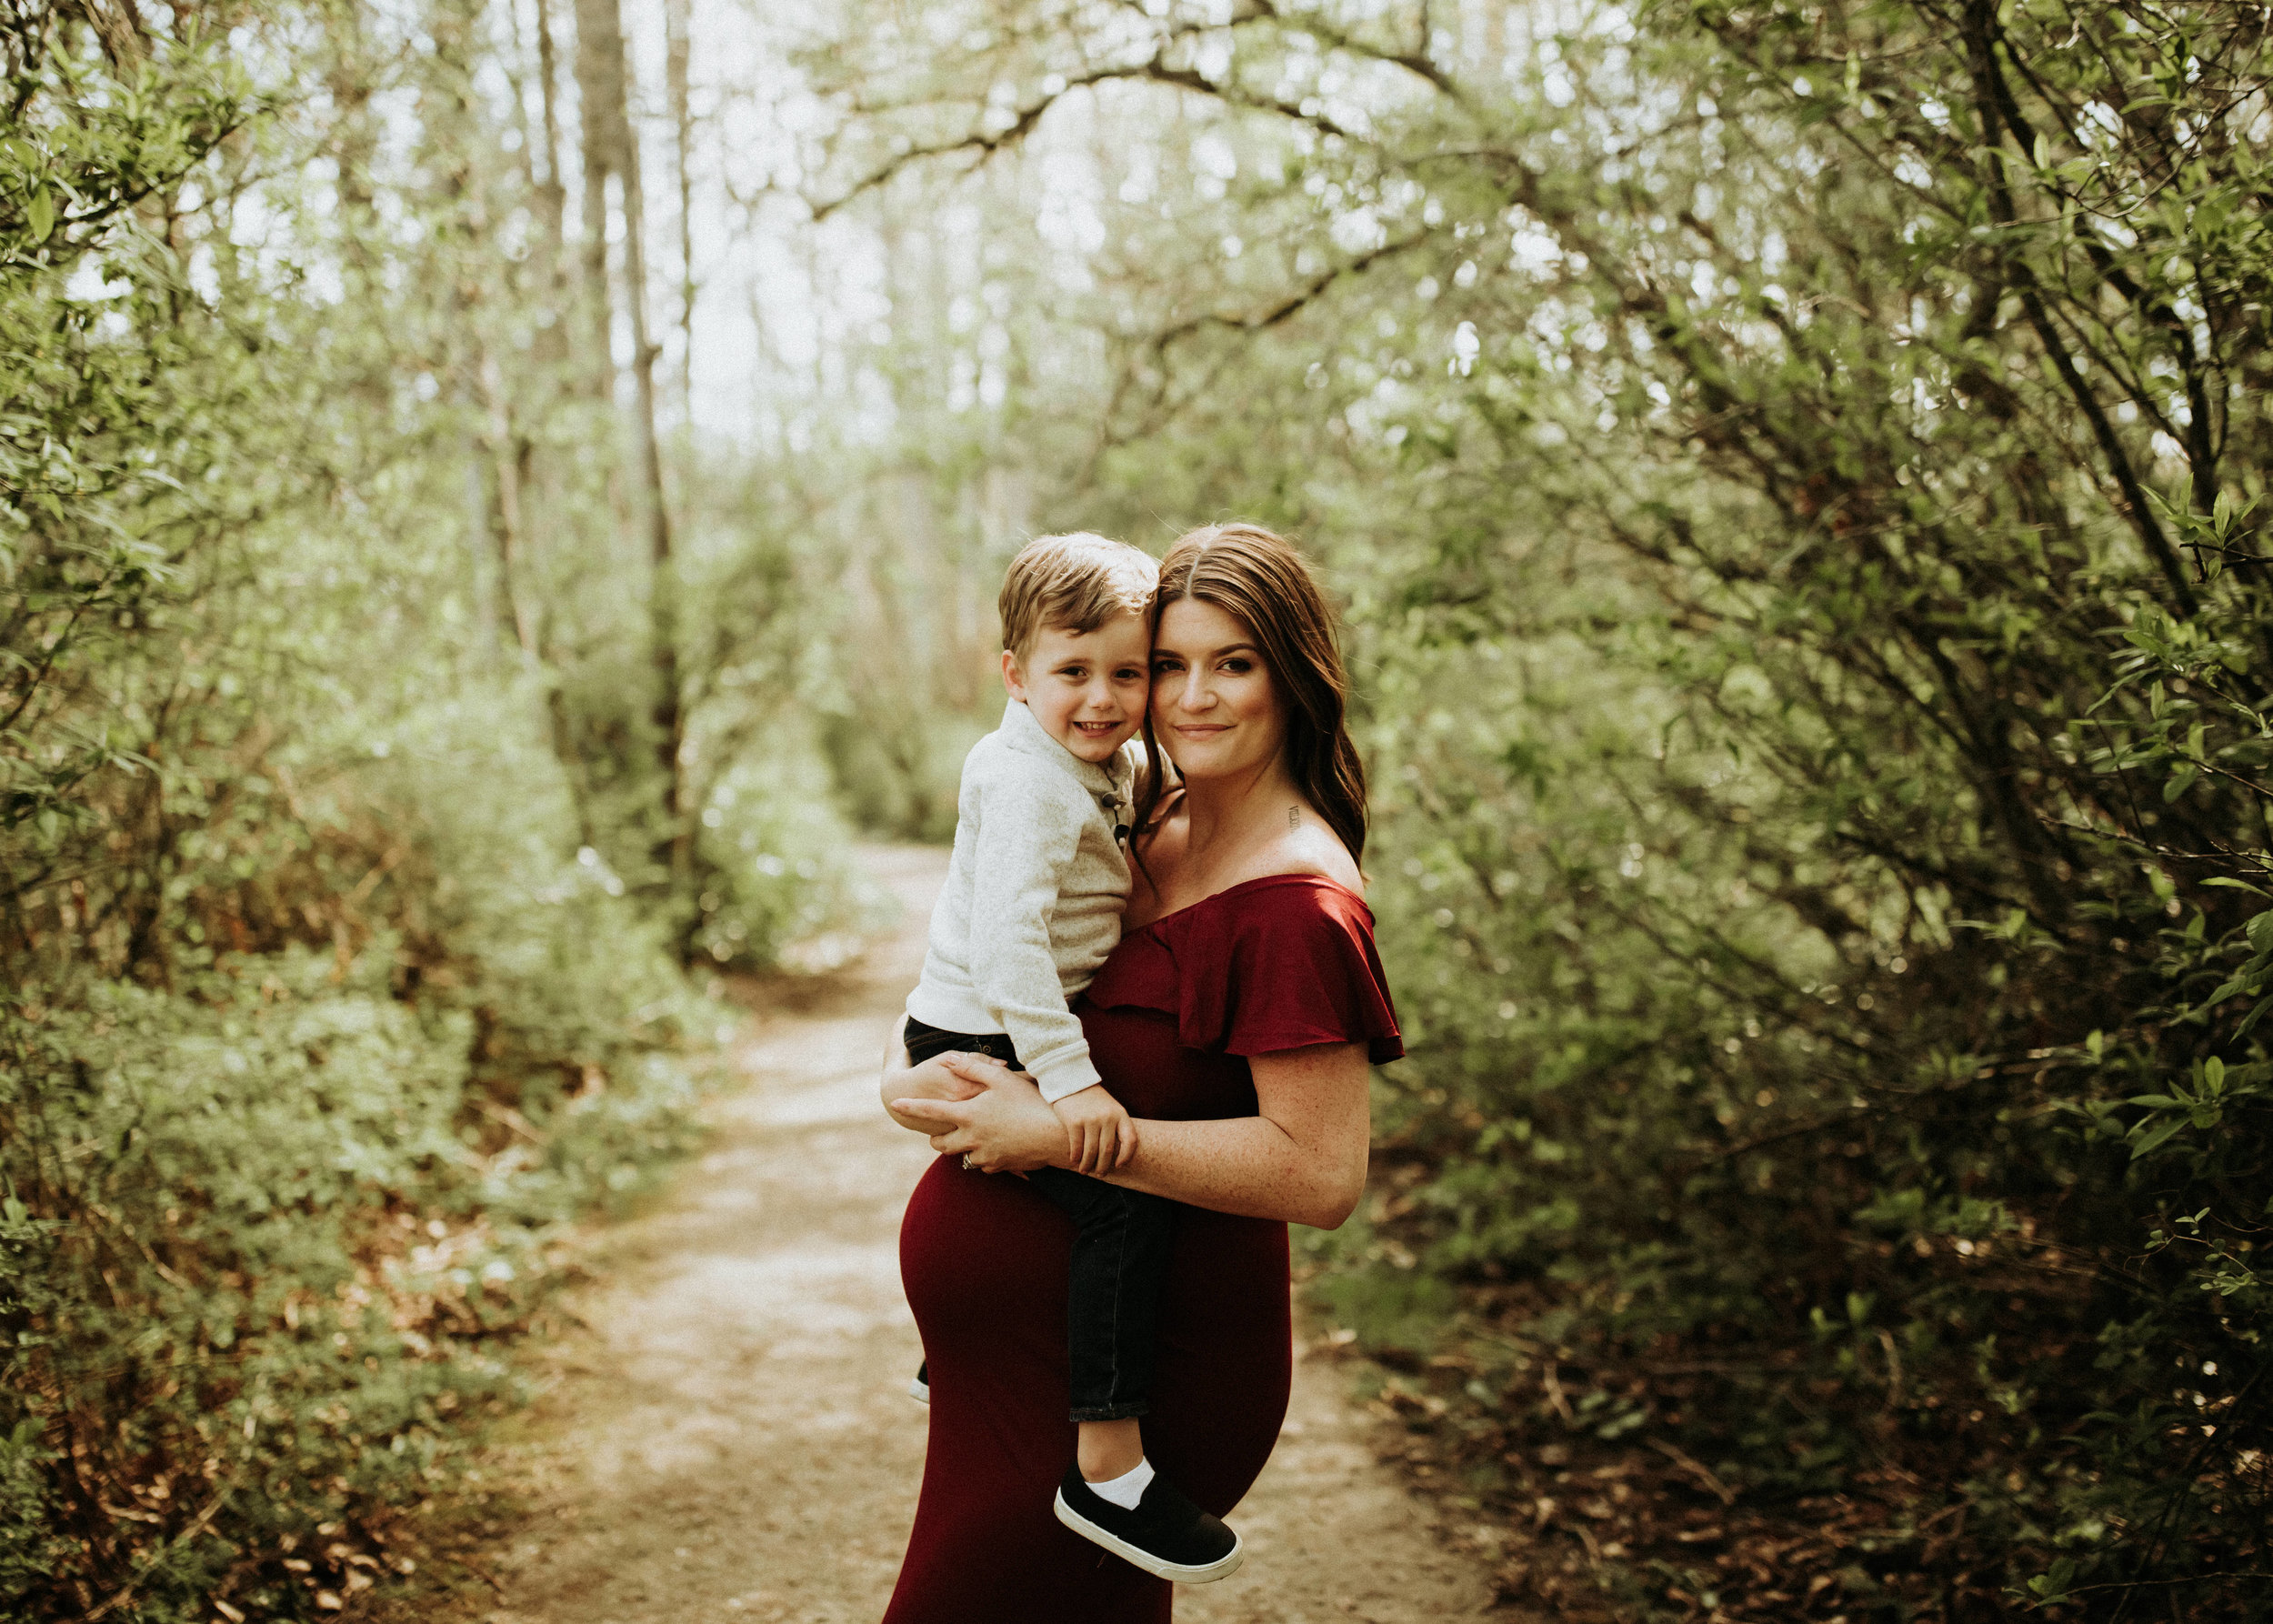 Maternity-Photographer-Bellingham-WA-Brianne-Bell-Photograpy-(Kaitlin)-22.jpg